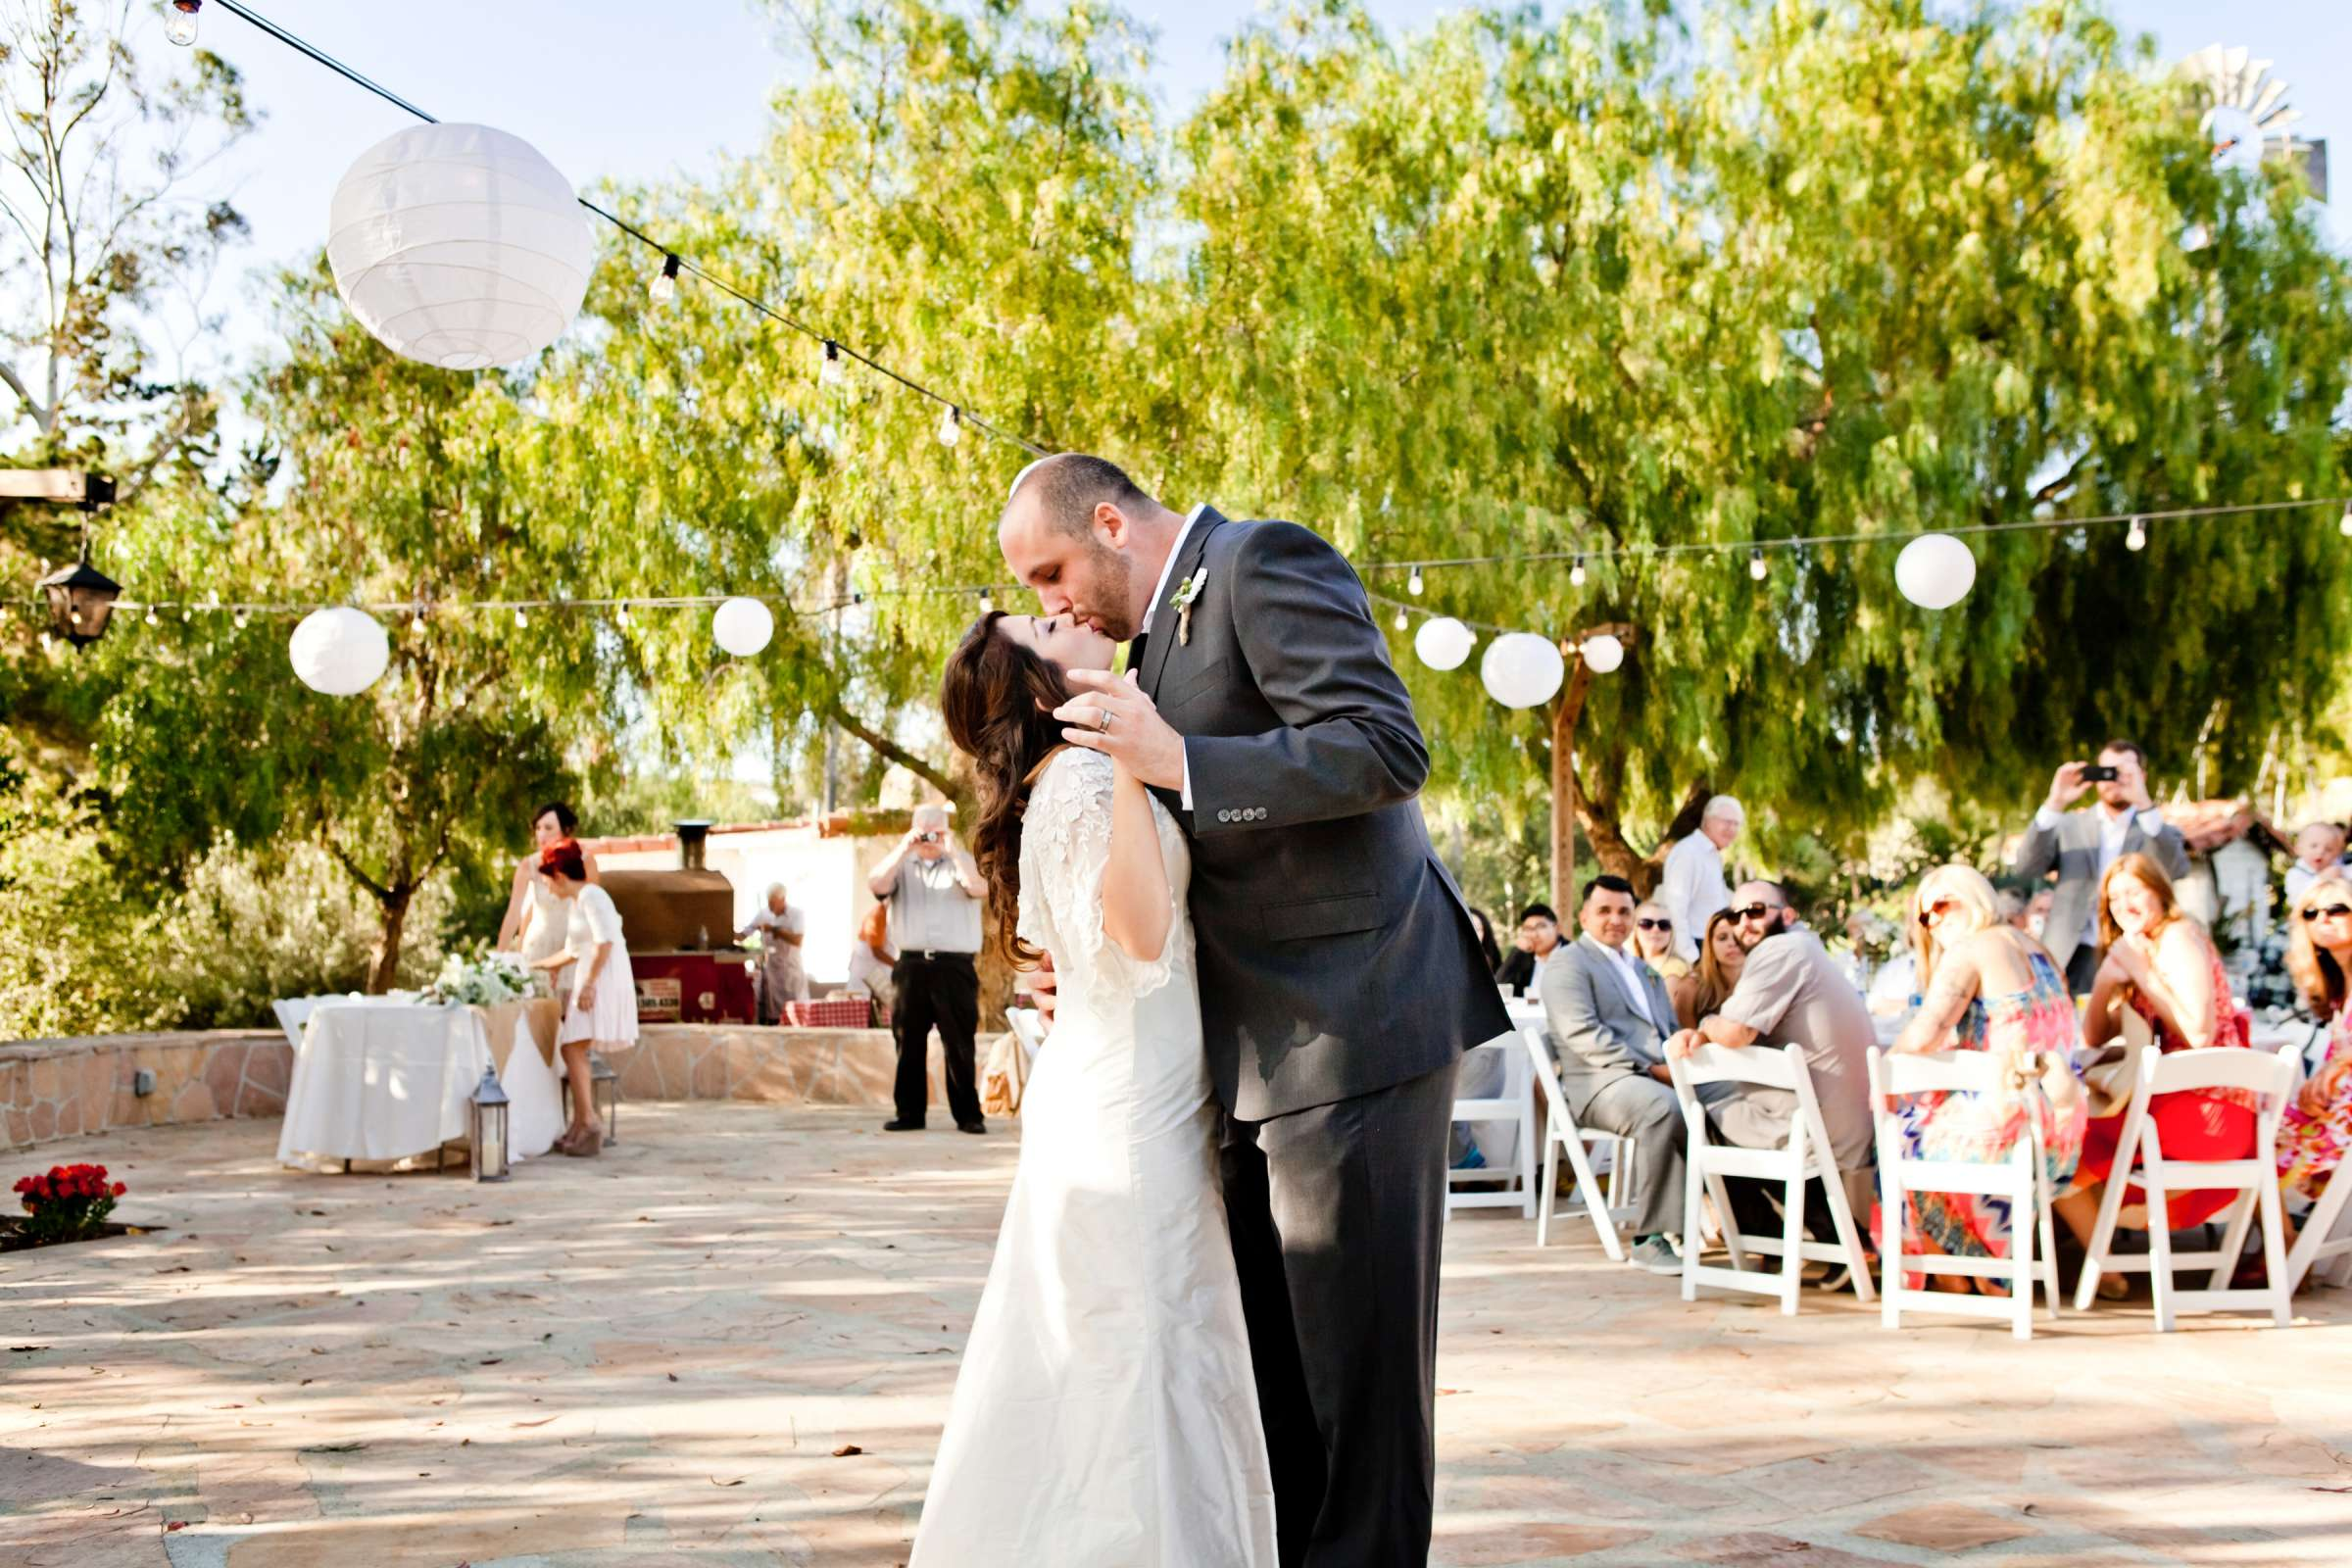 Leo Carrillo Ranch Wedding coordinated by Weddings by Lisa Nicole, Bethany and Aaron Wedding Photo #40 by True Photography